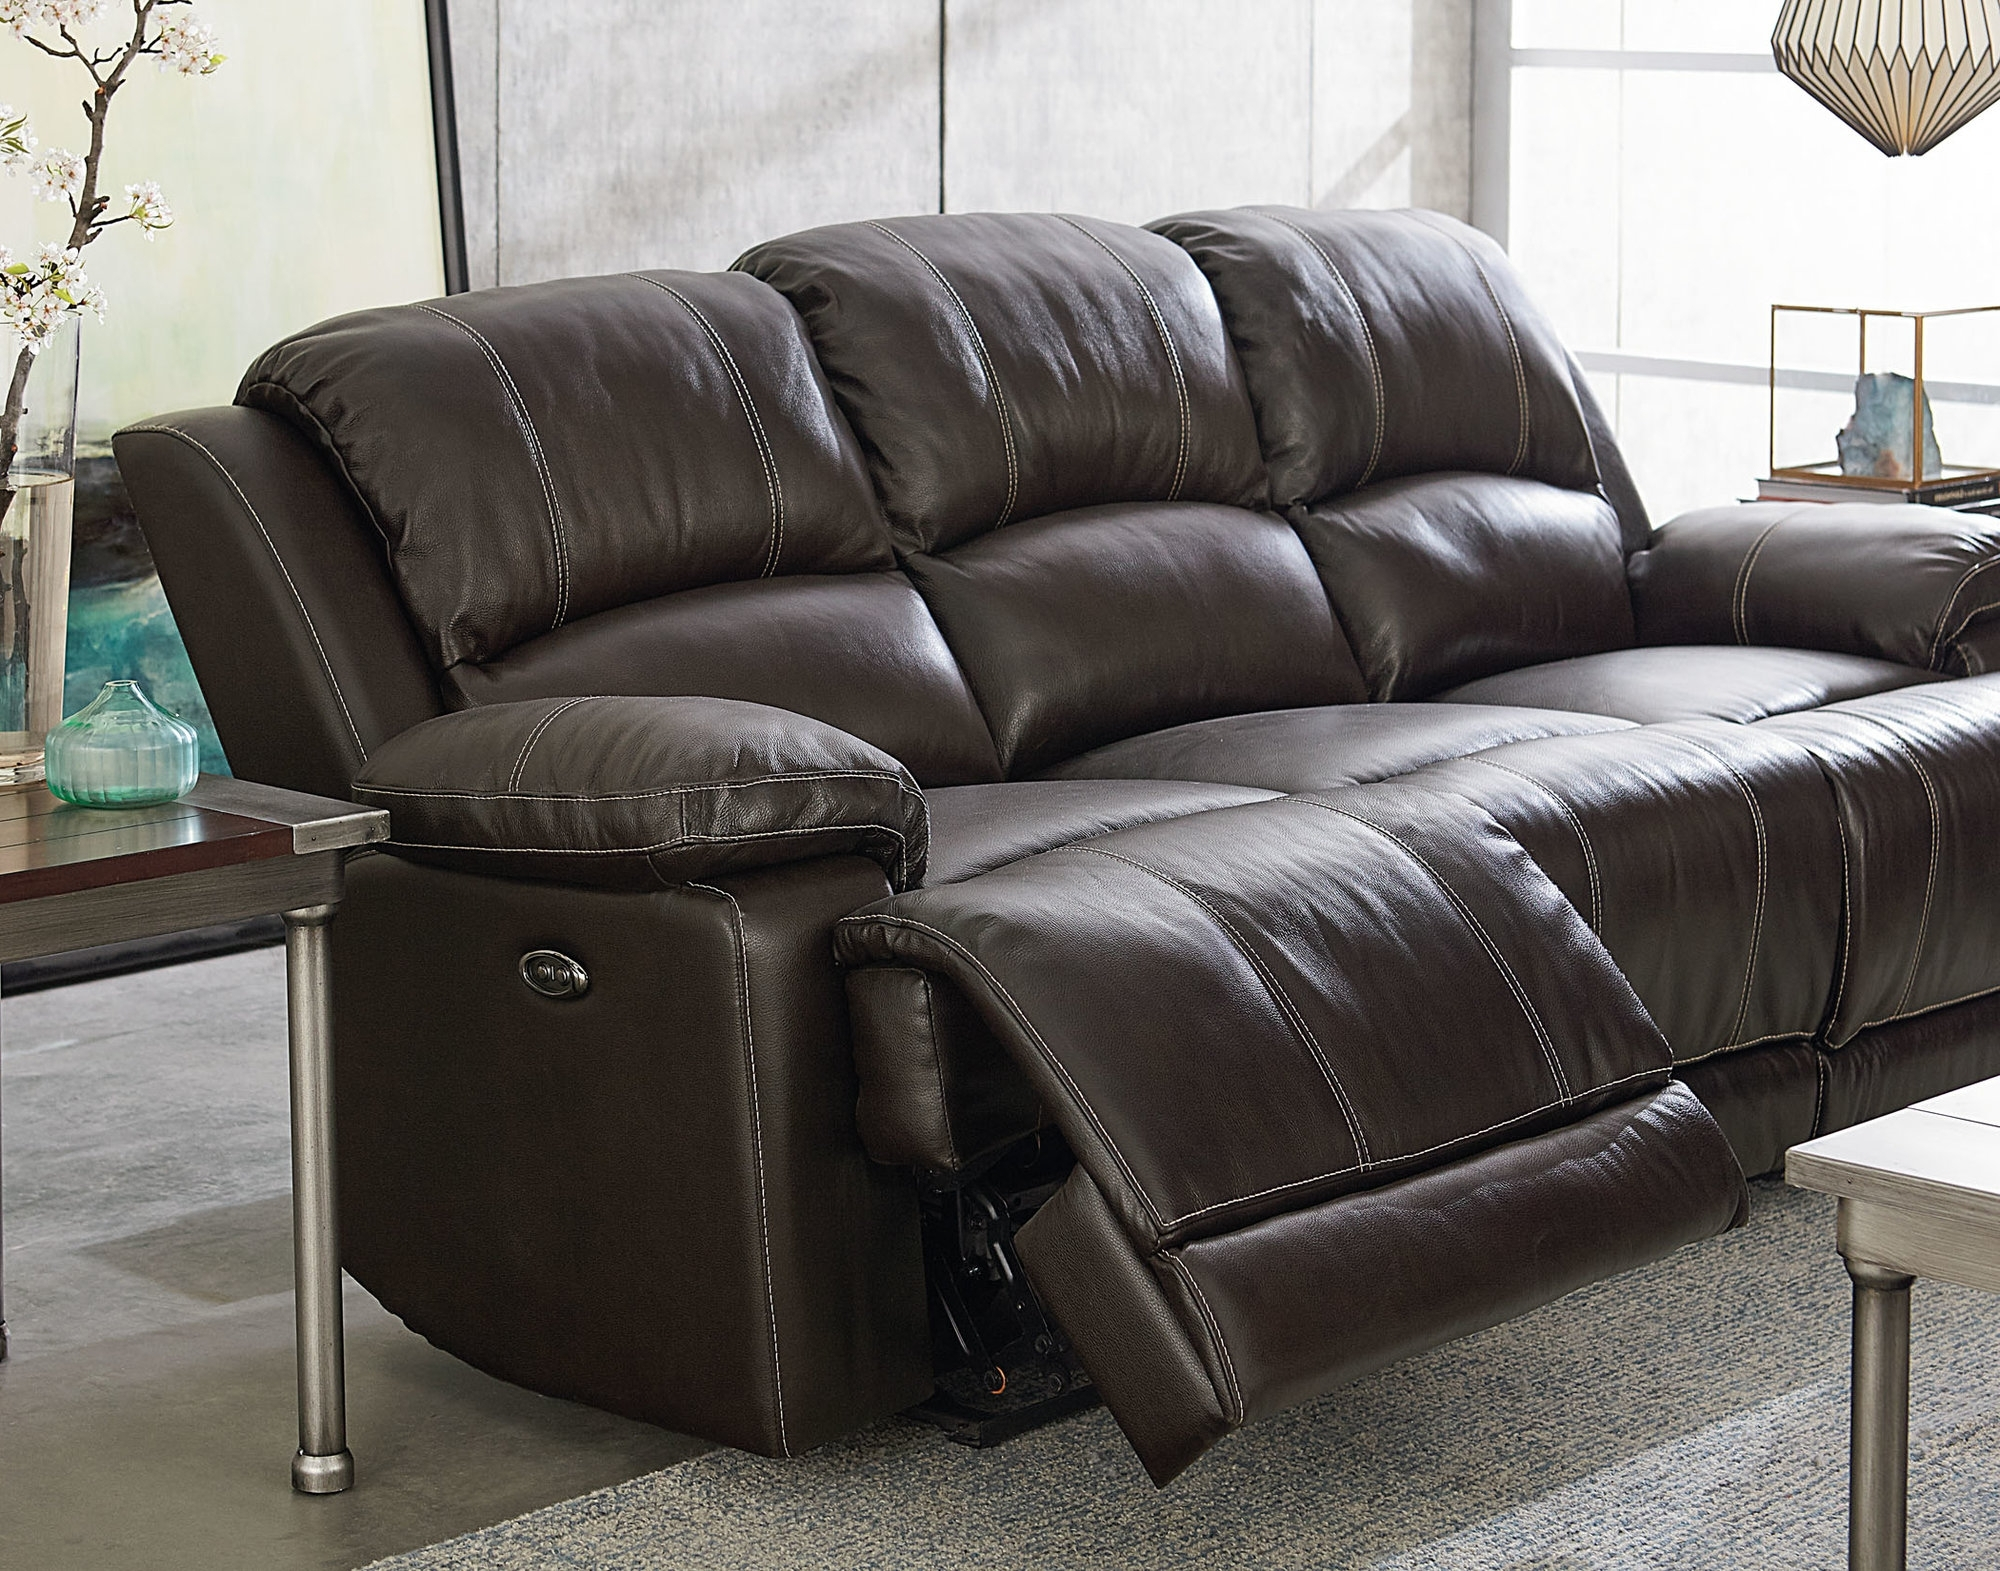 20 Ideas of Red Leather Reclining Sofas And Loveseats